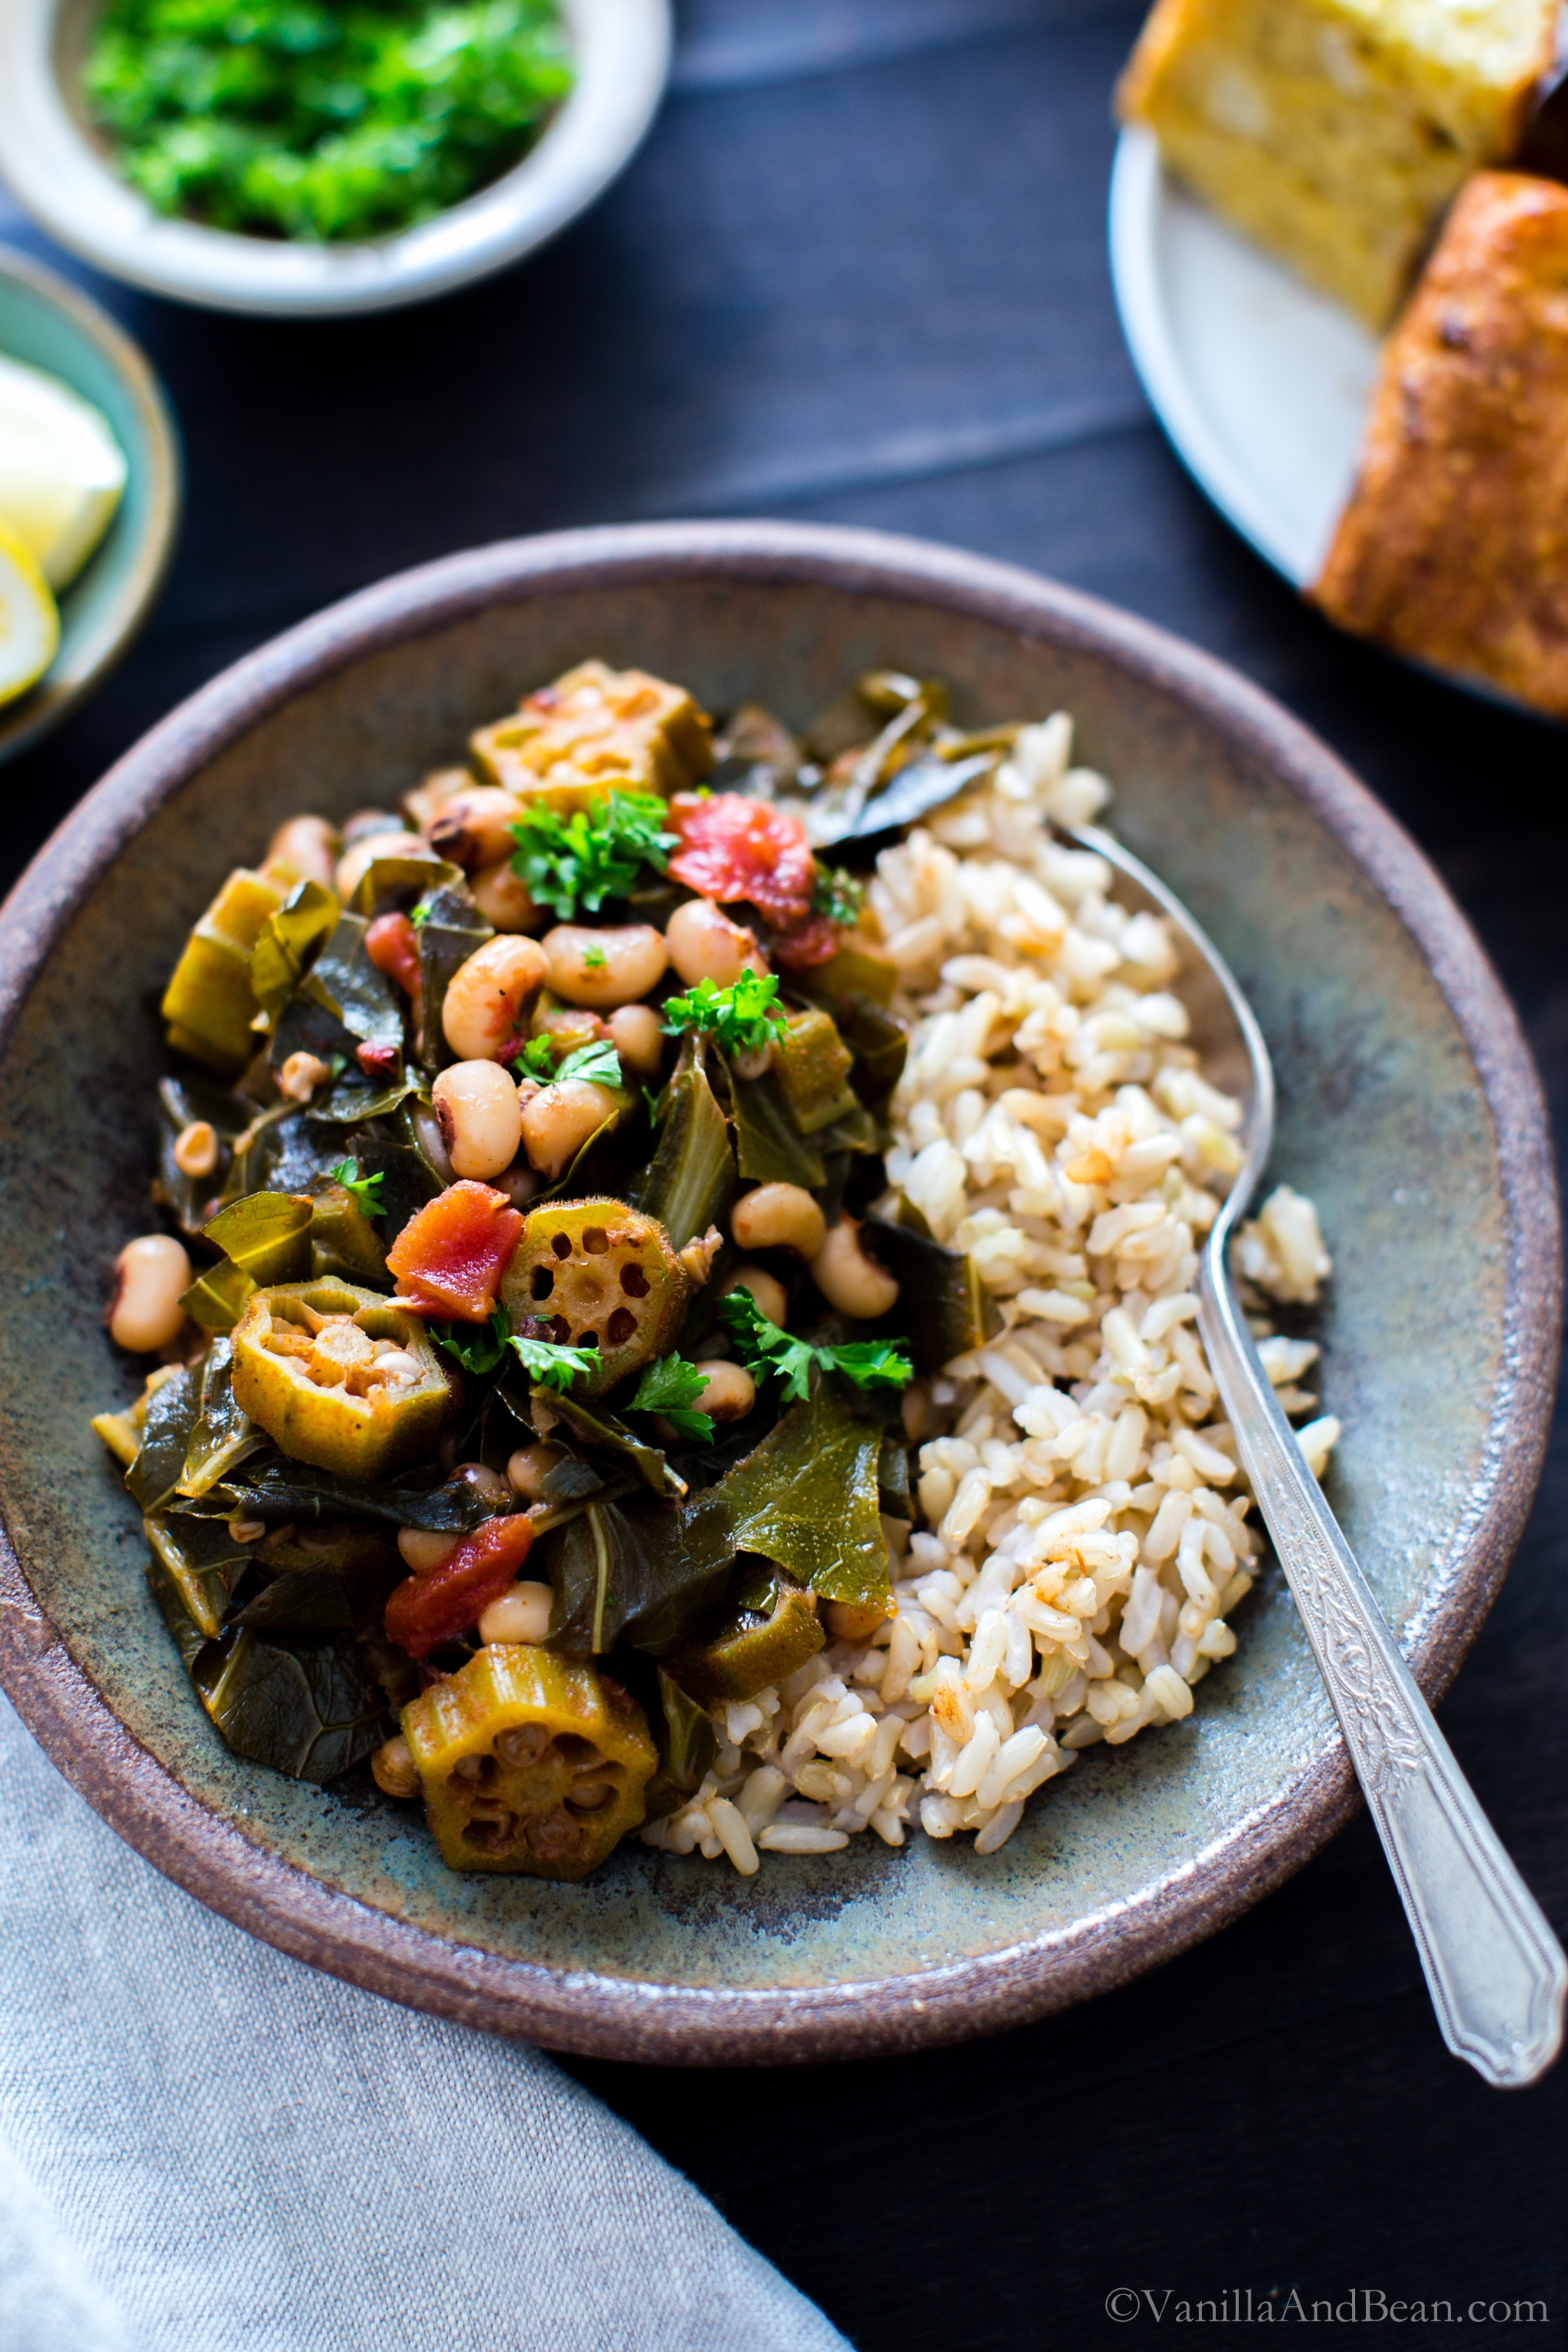 Harissa Stewed Black Eyed Peas With Okra And Collard Greens Vanilla And Bean